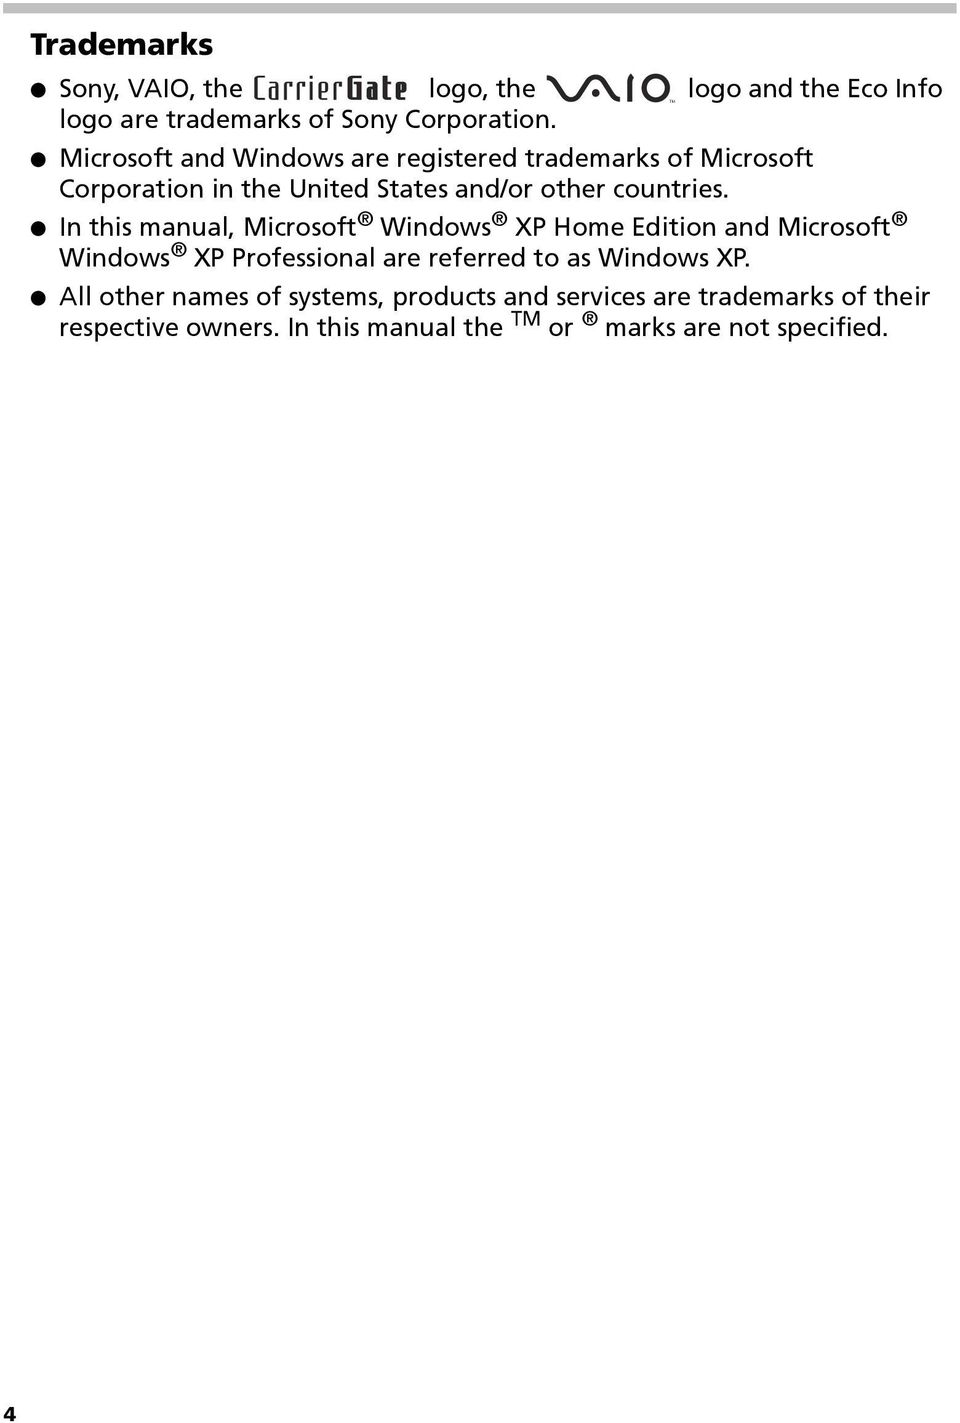 In this manual, Microsoft Windows XP Home Edition and Microsoft Windows XP Professional are referred to as Windows XP.